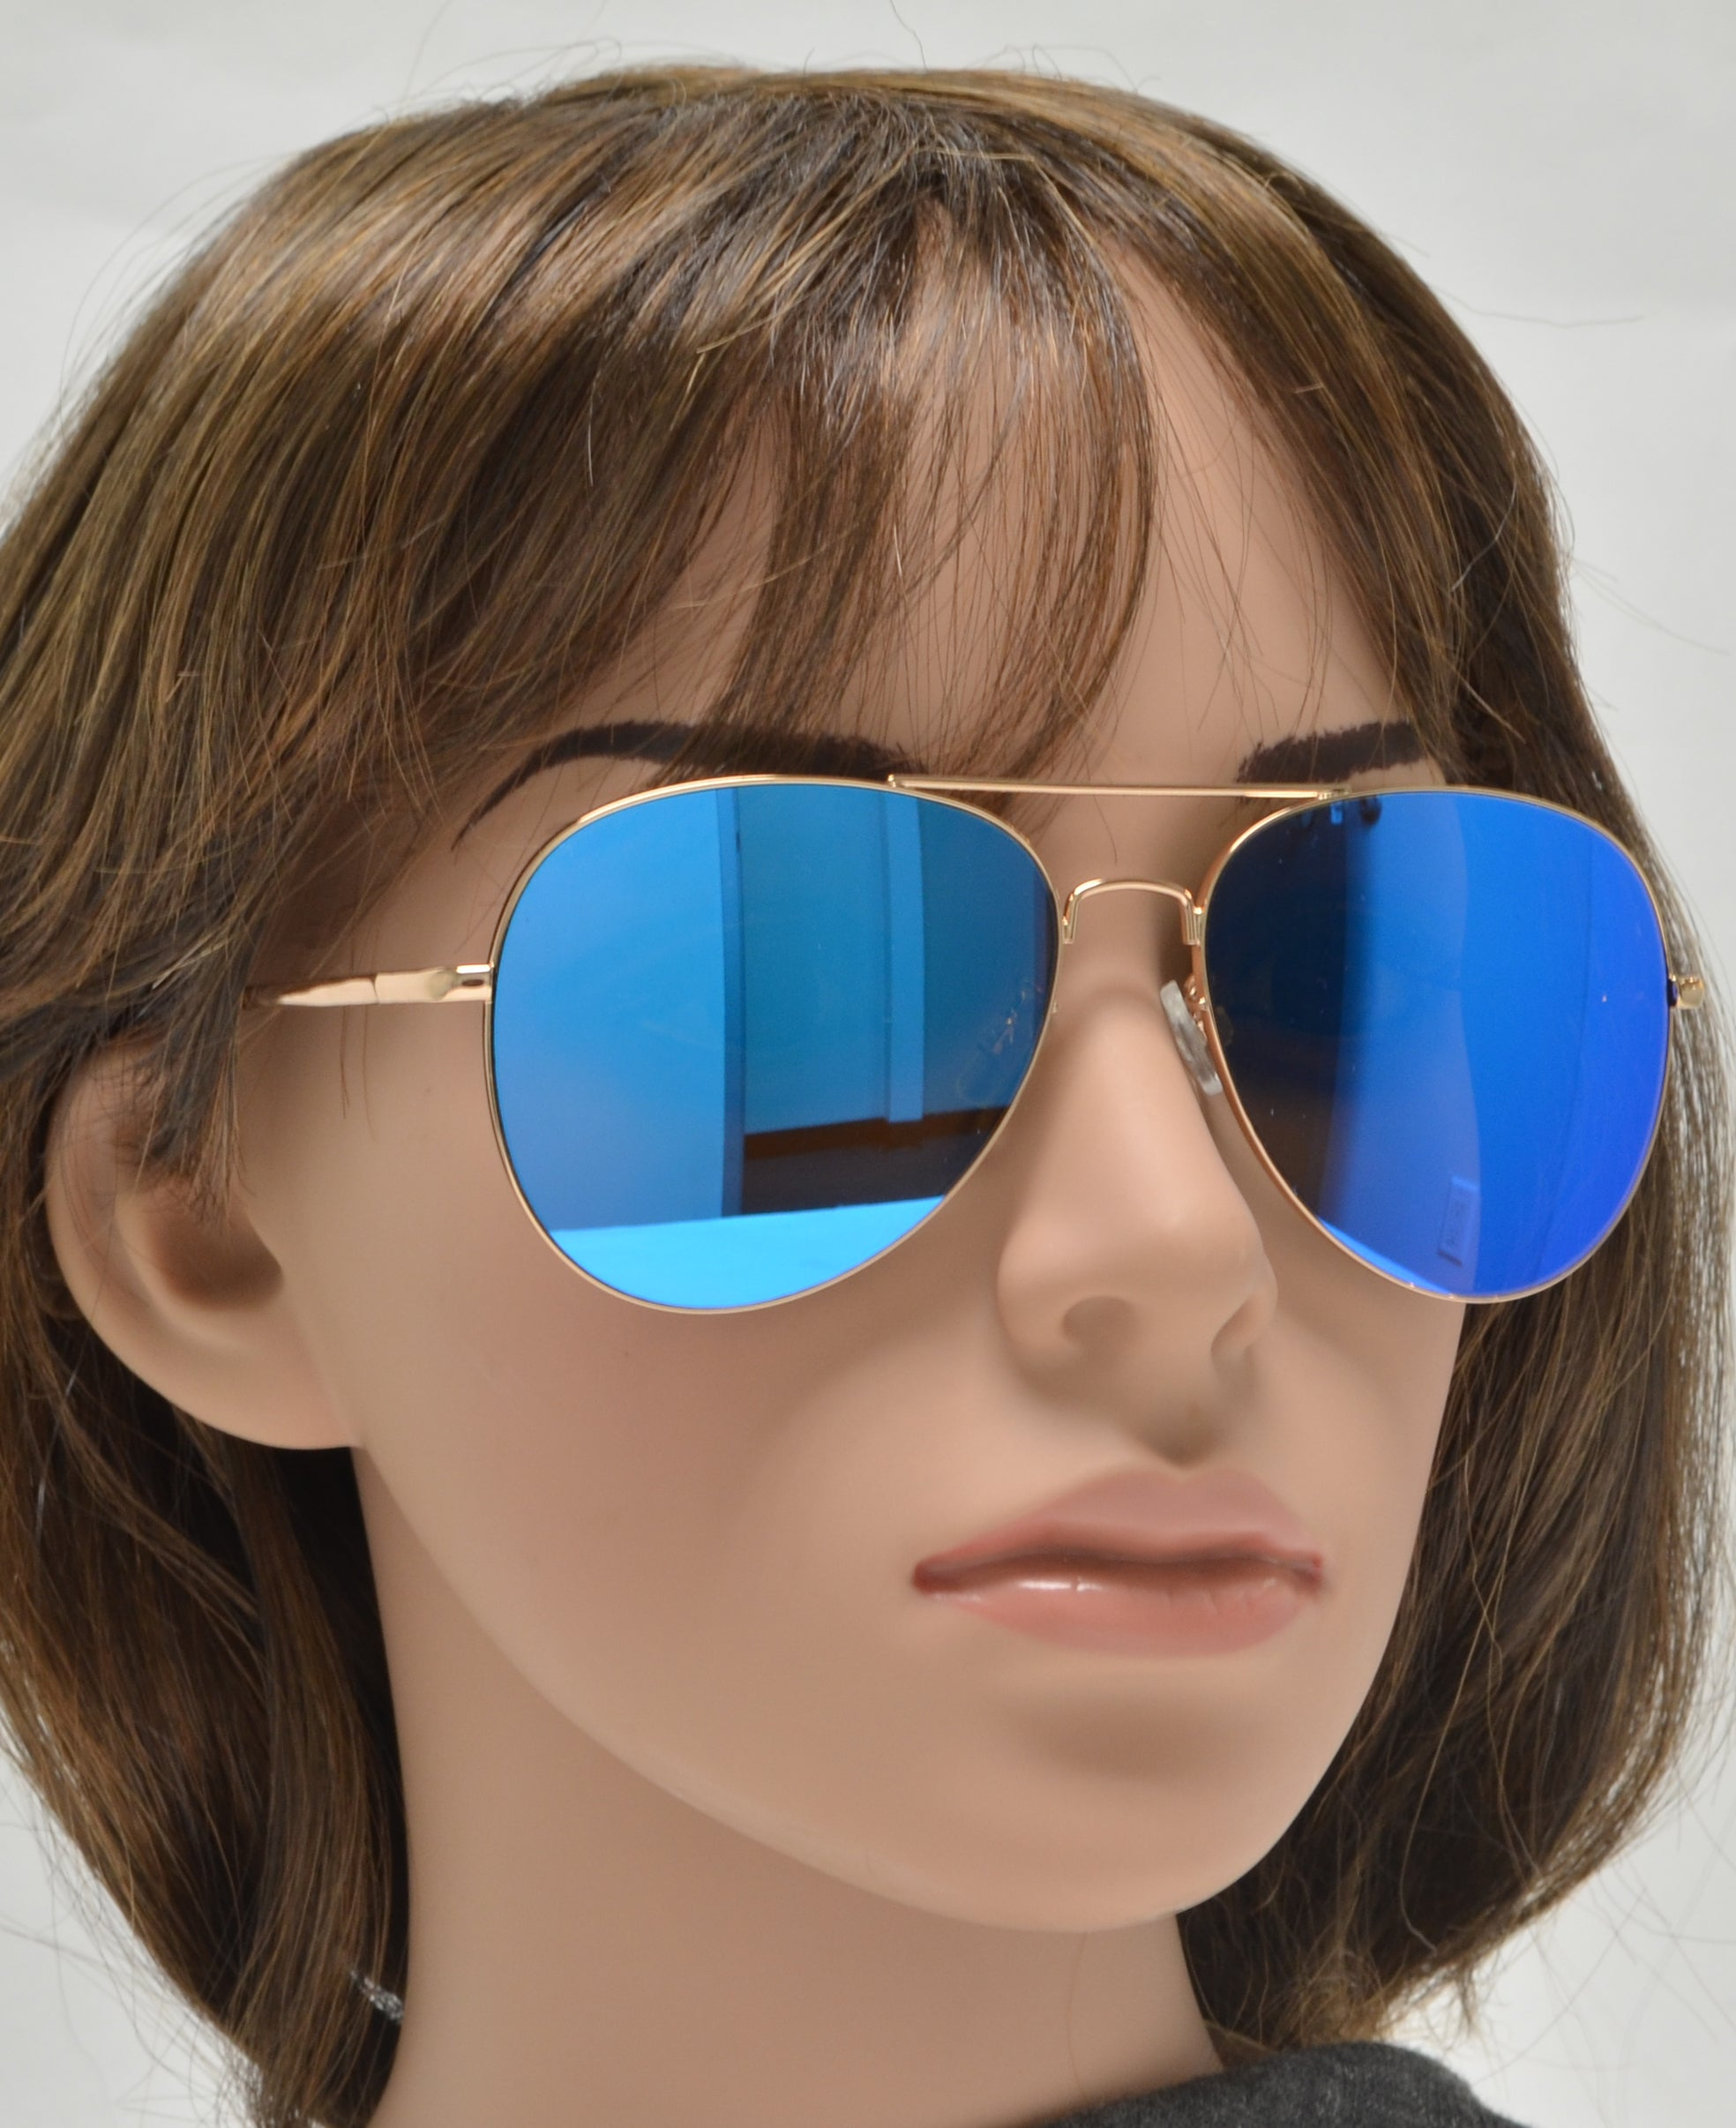 FC 6516 Blue RV - Oval Shaped Thin Stainless Frame Sunglasses with Blue Mirror Lens